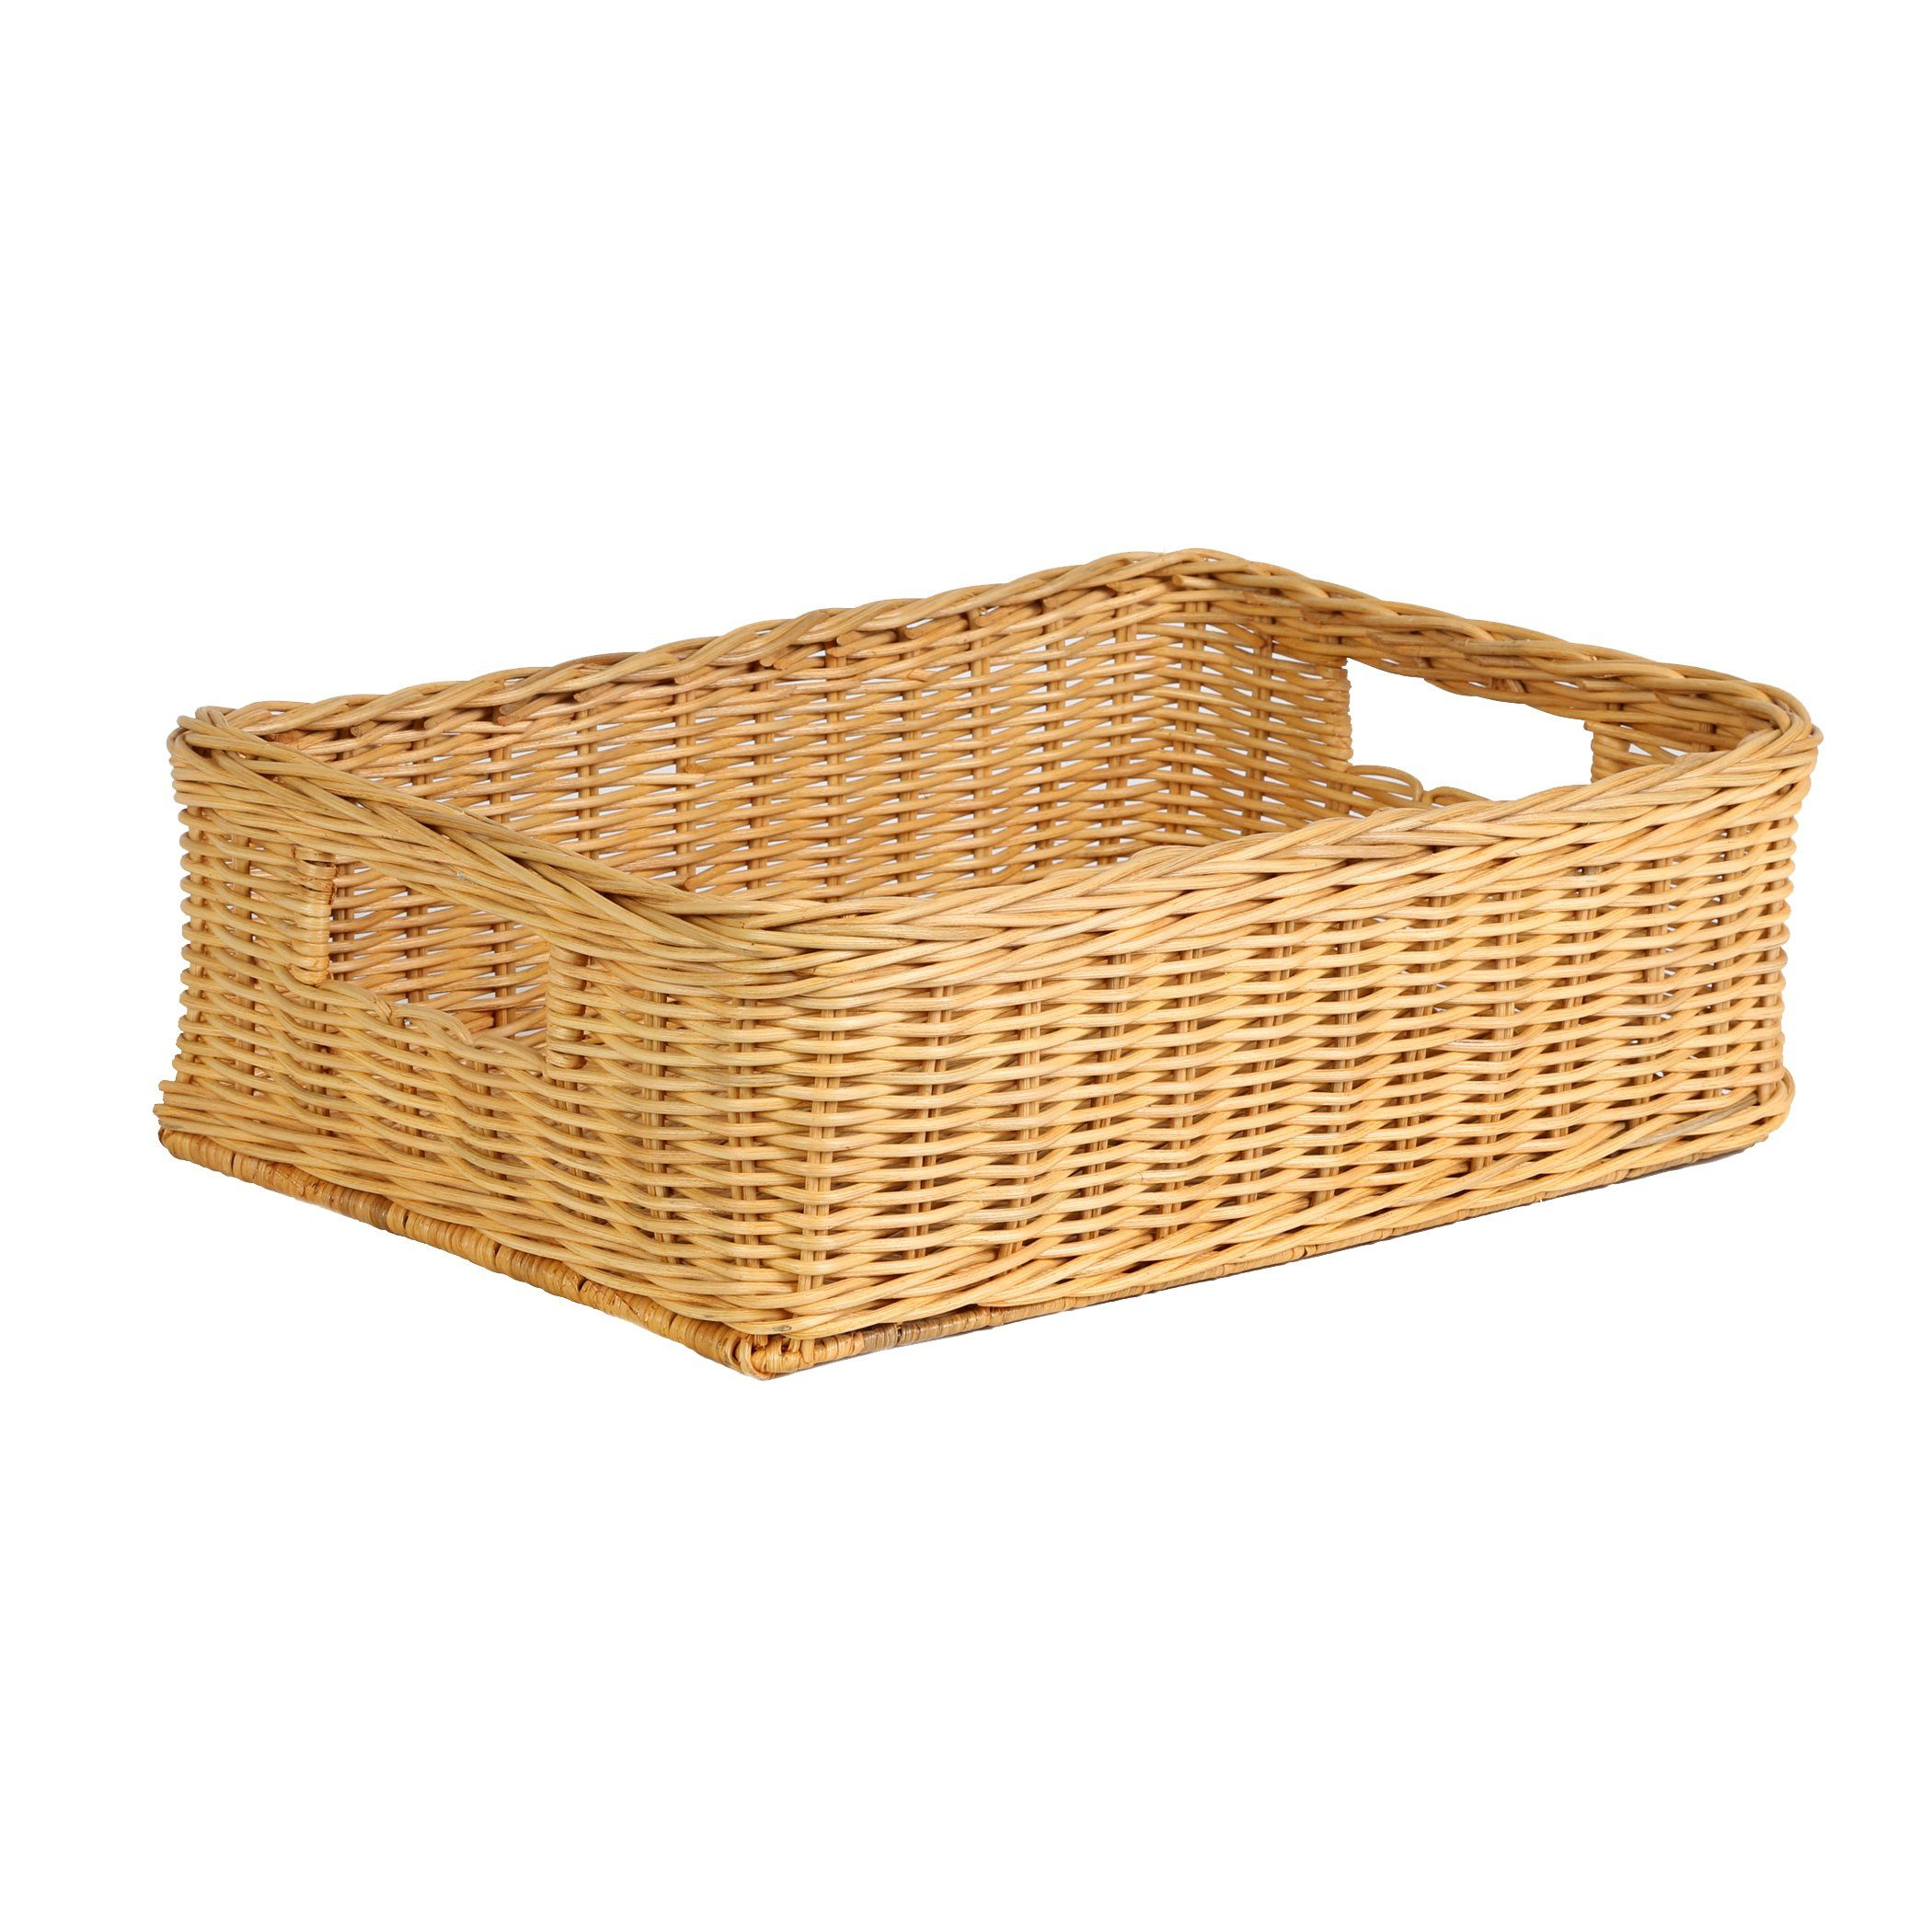 Home underbed storage baskets wicker underbed storage basket -  The Basket Lady Underbed Wicker Storage Basket In Toasted Oat Size M From The Basket Lady